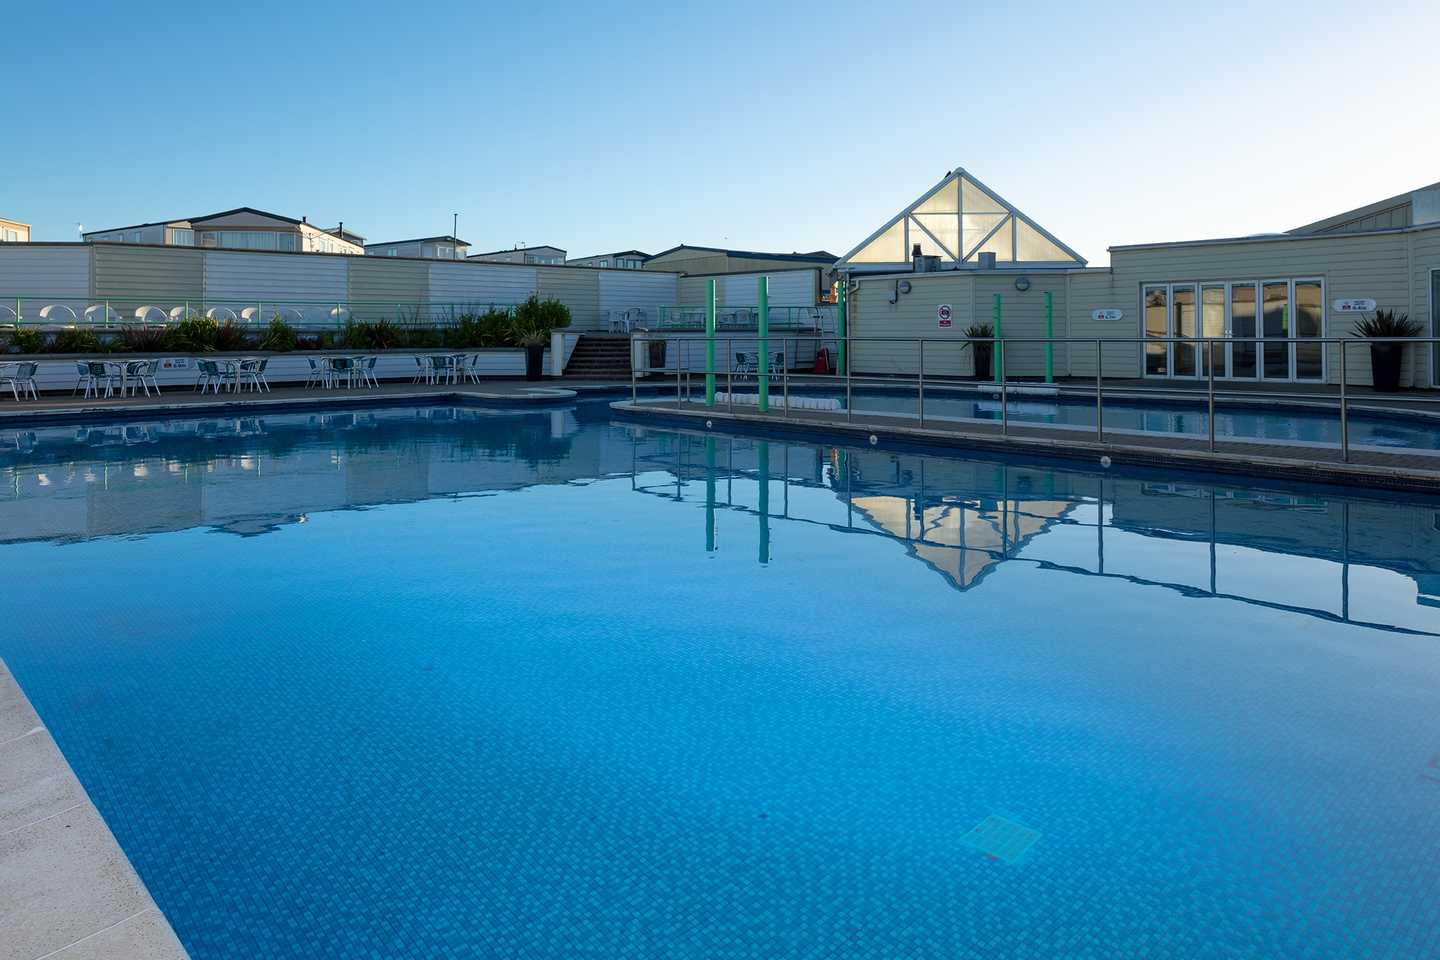 The outdoor pool at Blue Dolphin